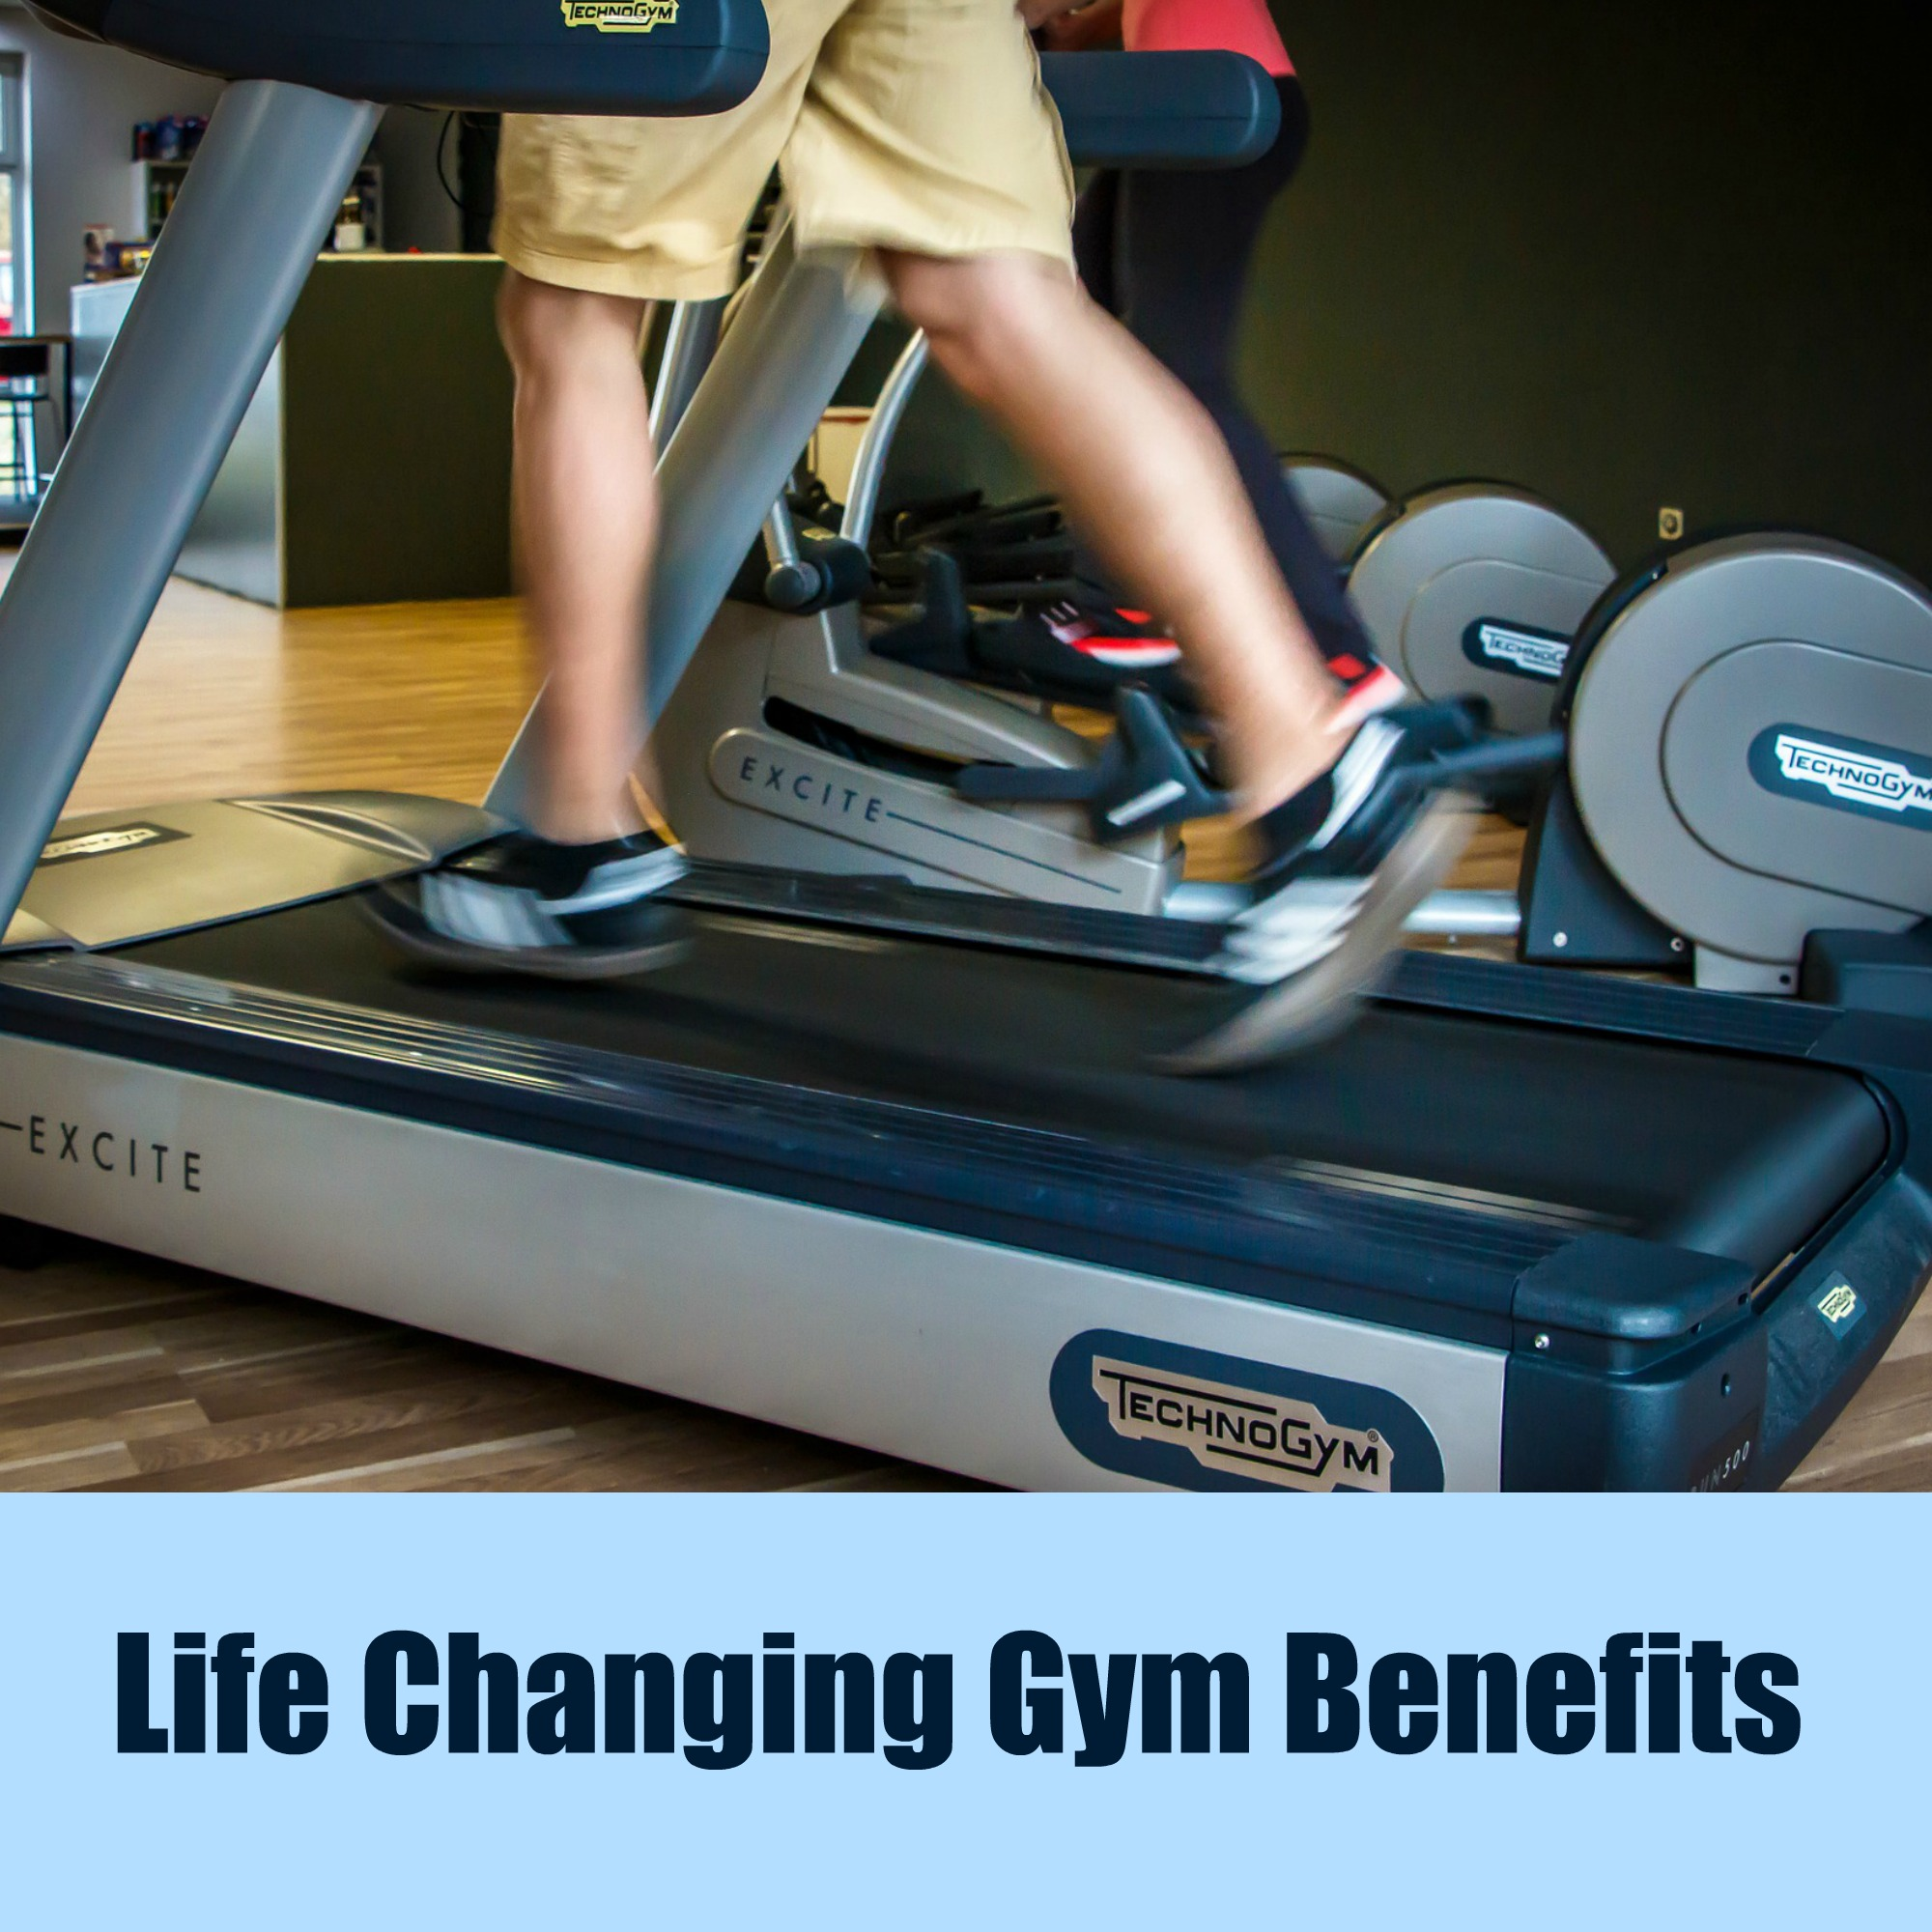 Life Changing Gym Benefits